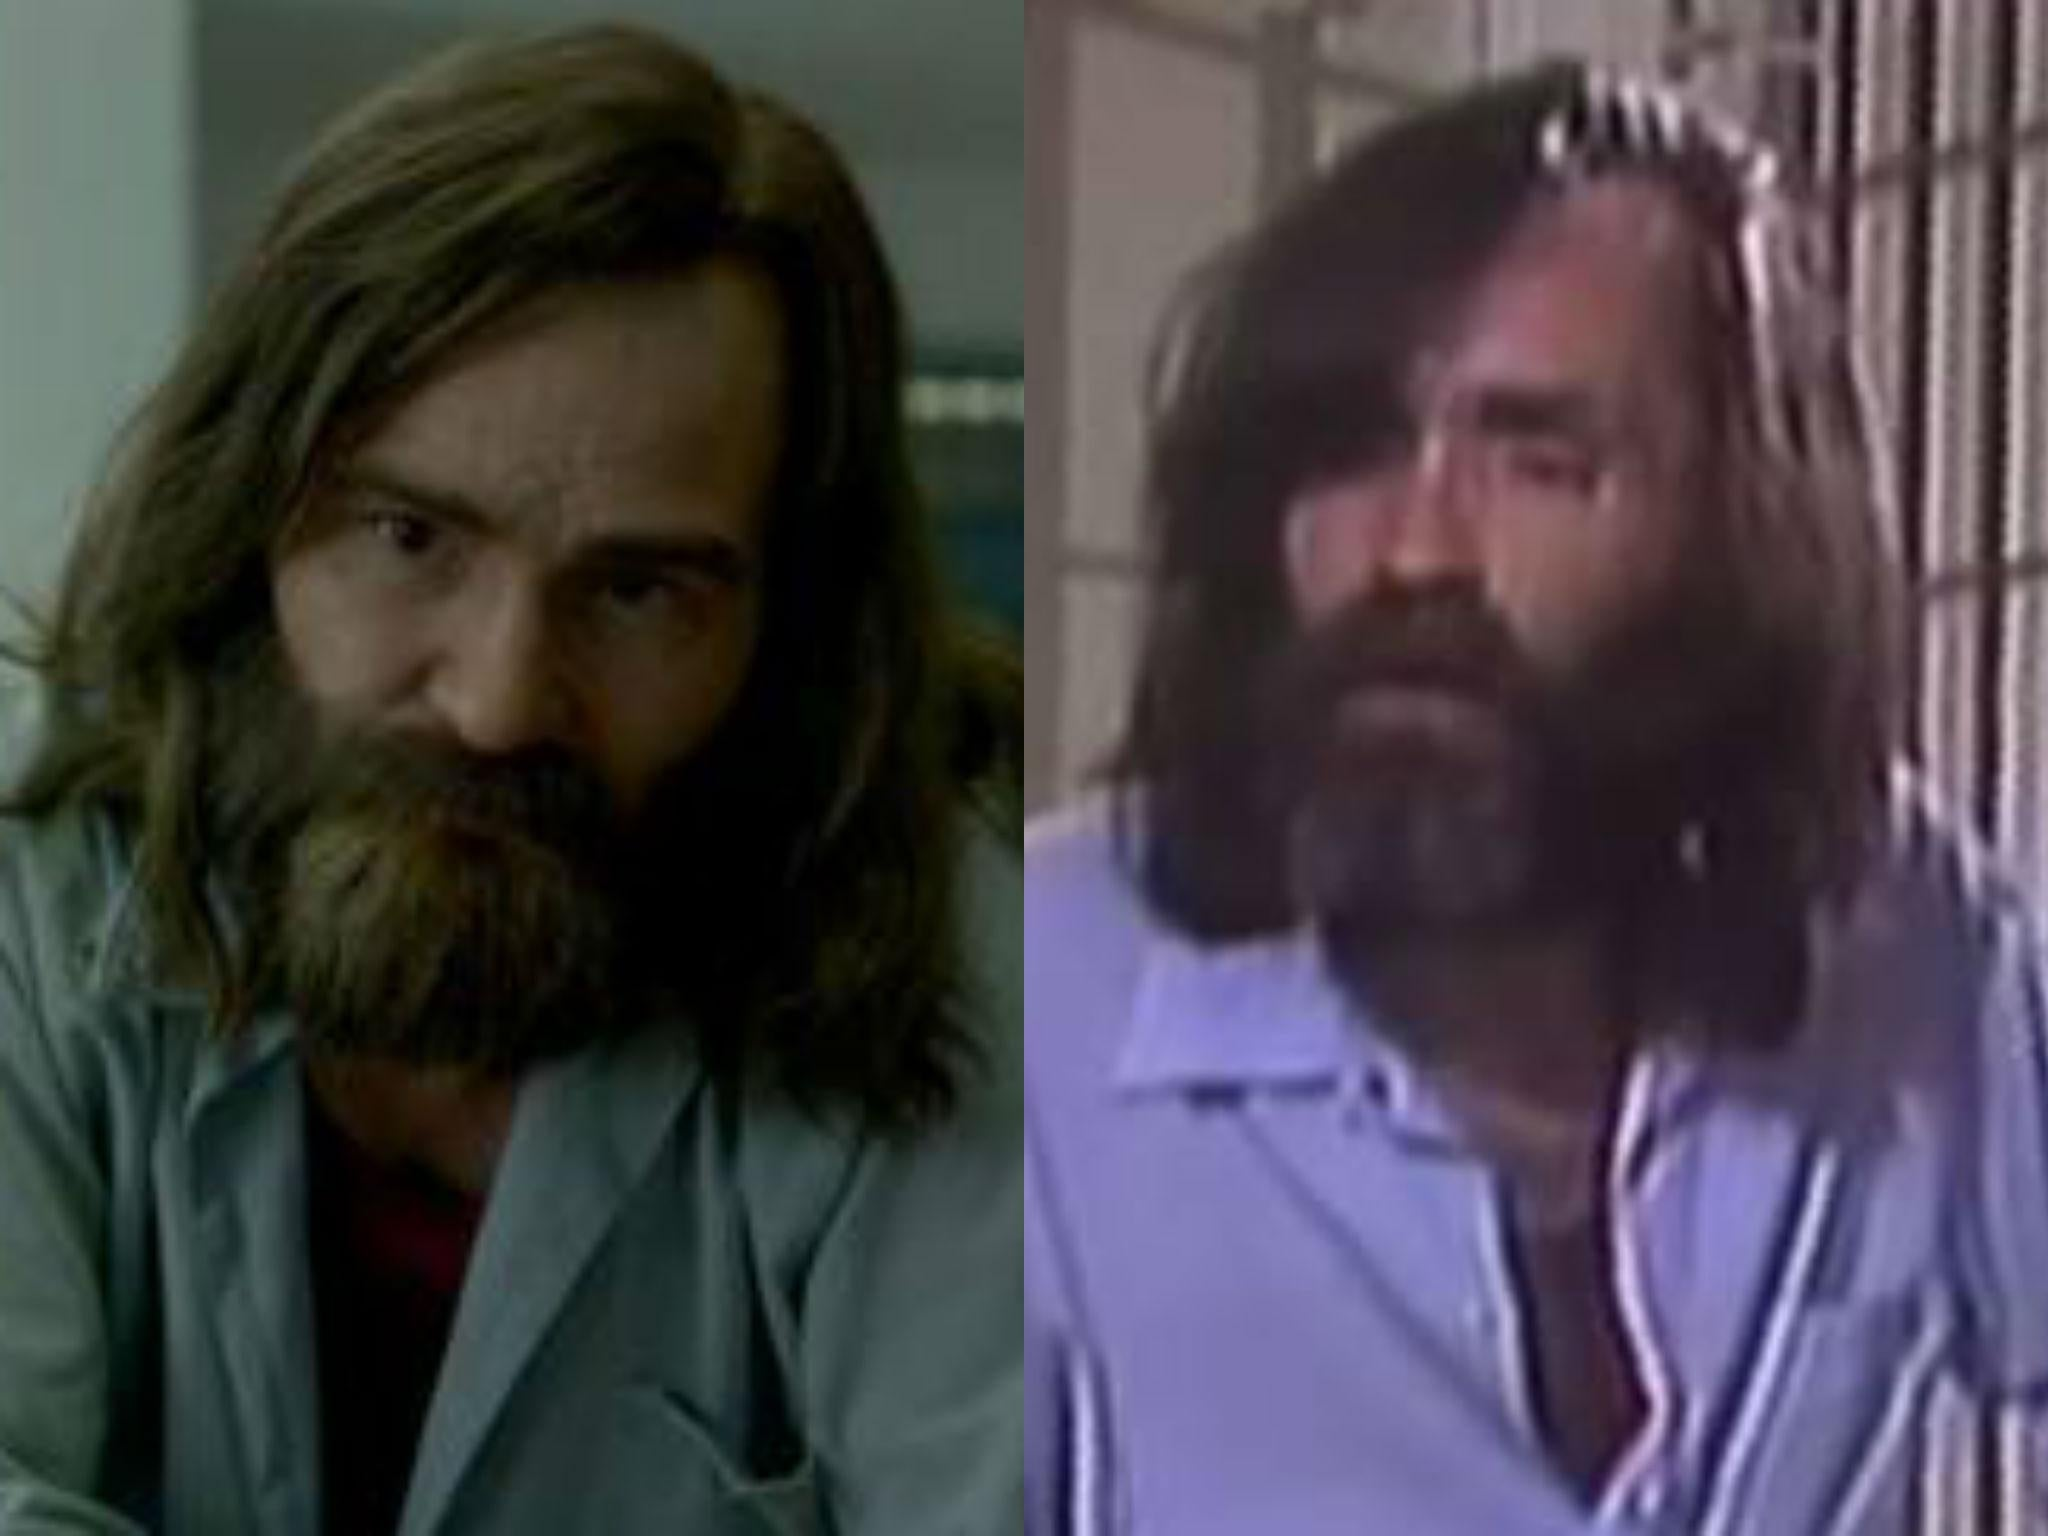 Charles Manson's 60 Minutes interview side-by-side with Mindhunter scene is chilling